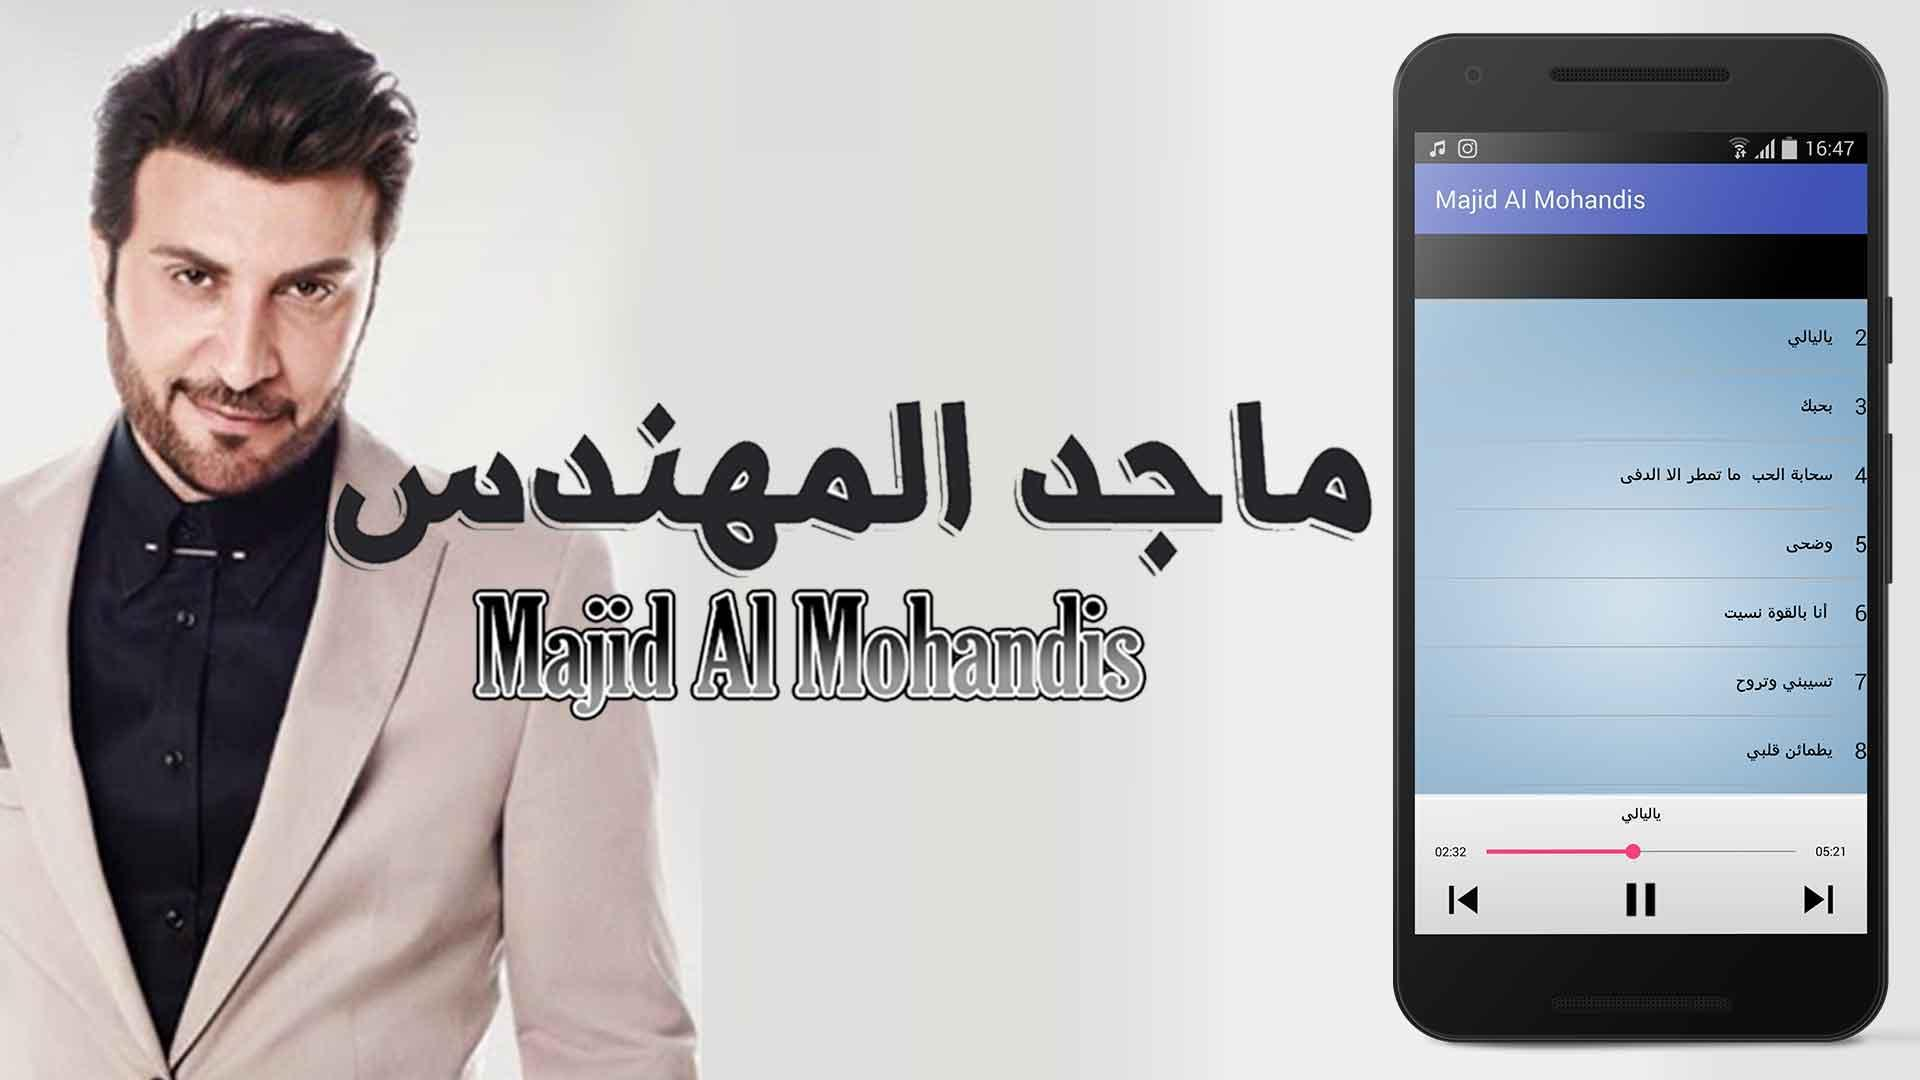 MOHANDES TÉLÉCHARGER WINEK EL MP3 NADIT MAJED